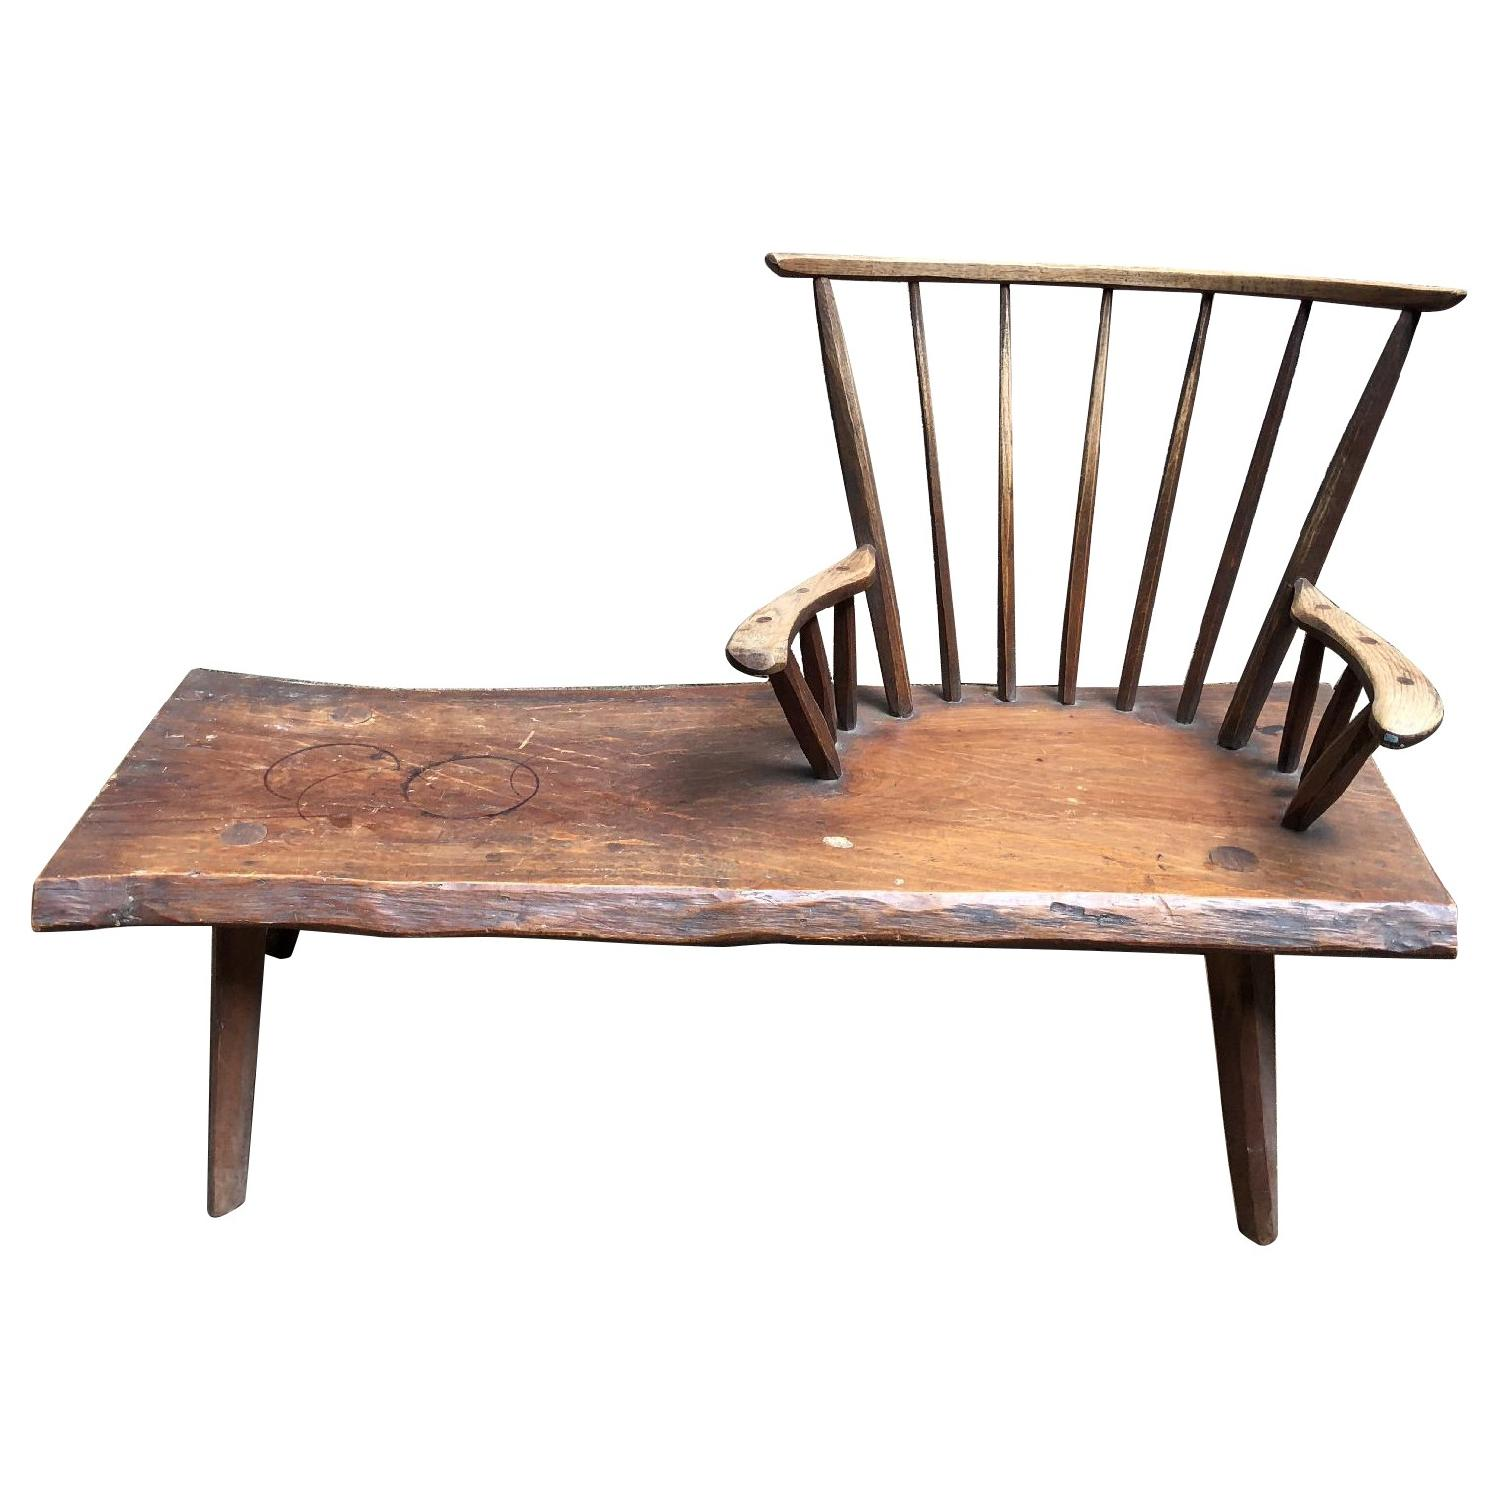 Cheerful Vintage Hunt Country Furniture Bench Table Vintage Hunt Country Furniture Bench Table Aptdeco Hunt Country Furniture Bench Hunt Country Furniture Chair houzz-03 Hunt Country Furniture